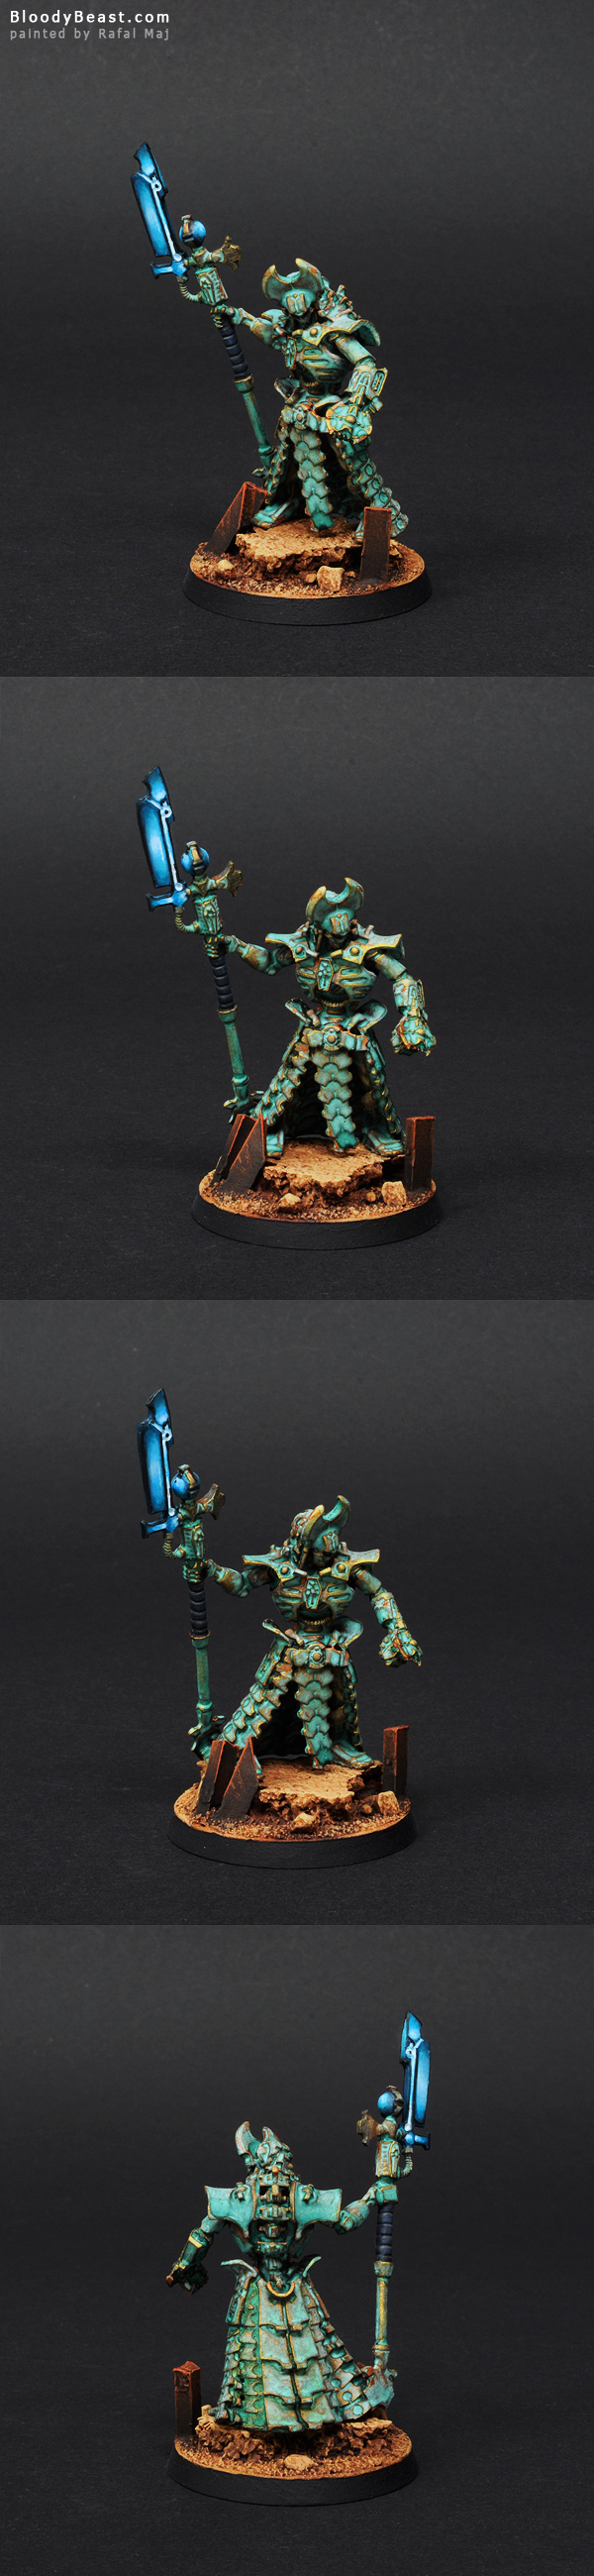 Anrakyr The Traveller painted by Rafal Maj (BloodyBeast.com)